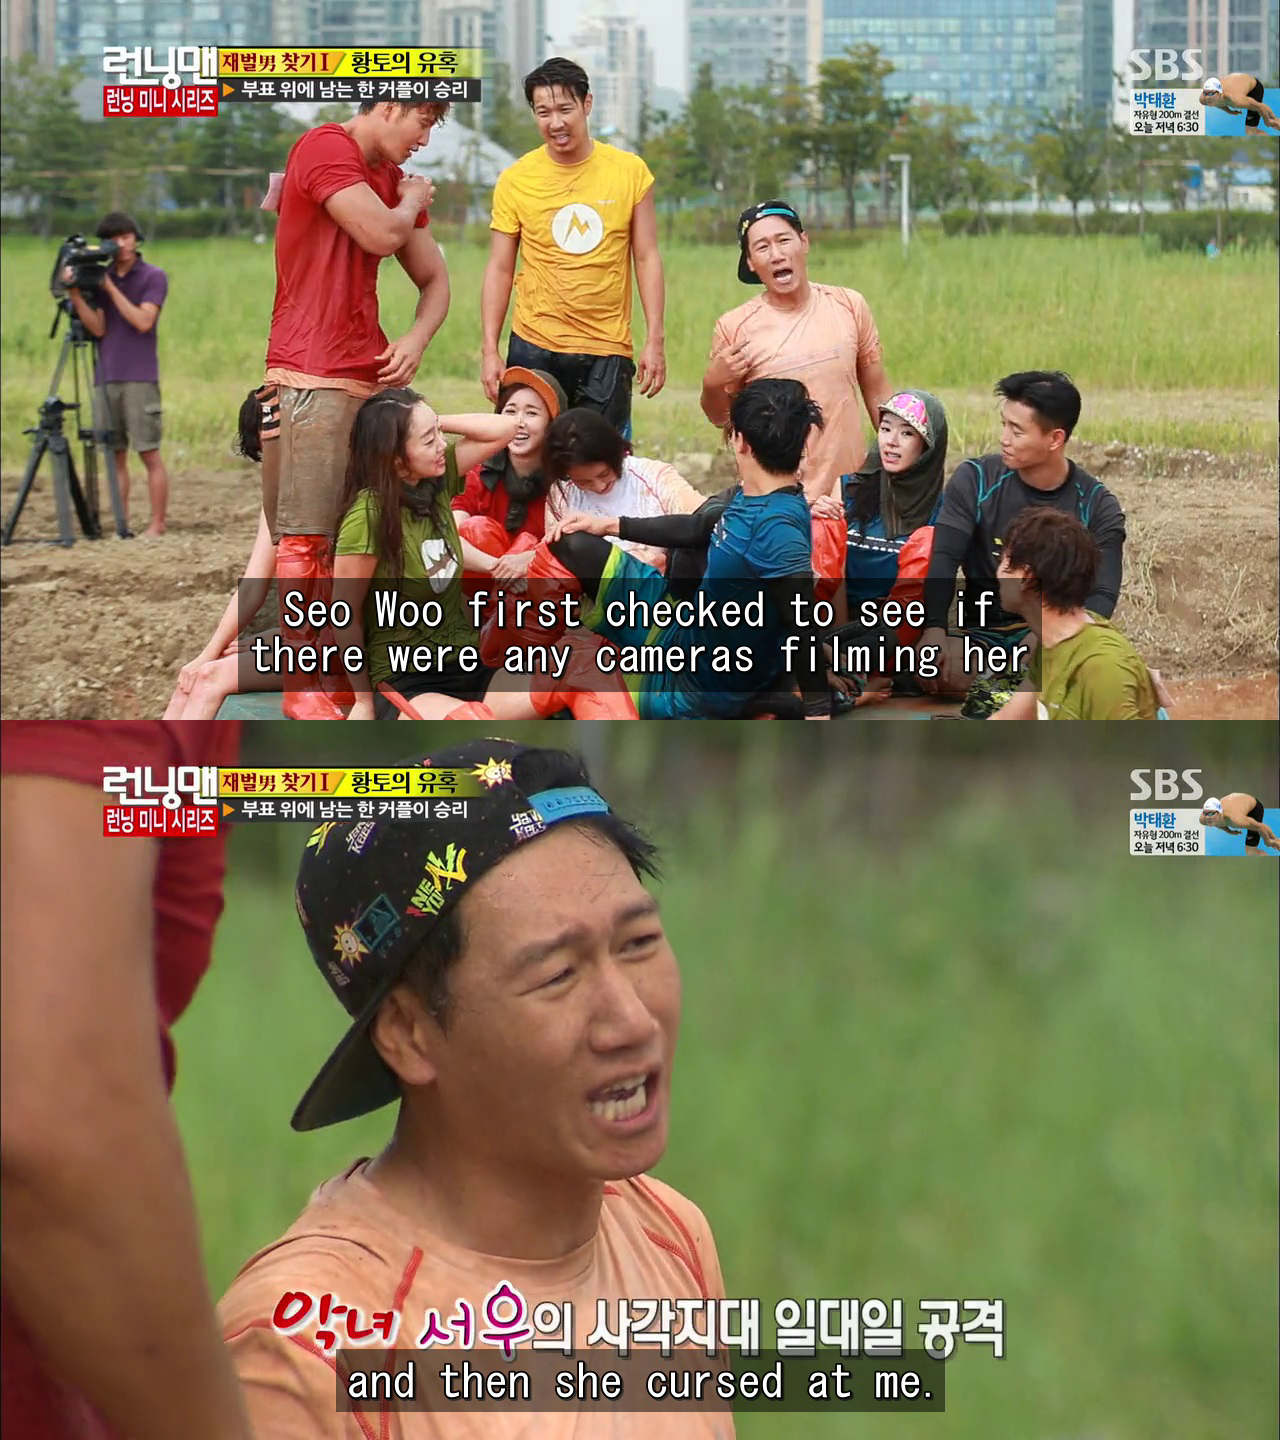 Image of: Watching But Before Long The Five Guests Proved Themselves To Be Funny And Unpredictable The Format Of The Games Allowed For The Couples To Change Which Avoided If By Japan Rssingcom If By Japan